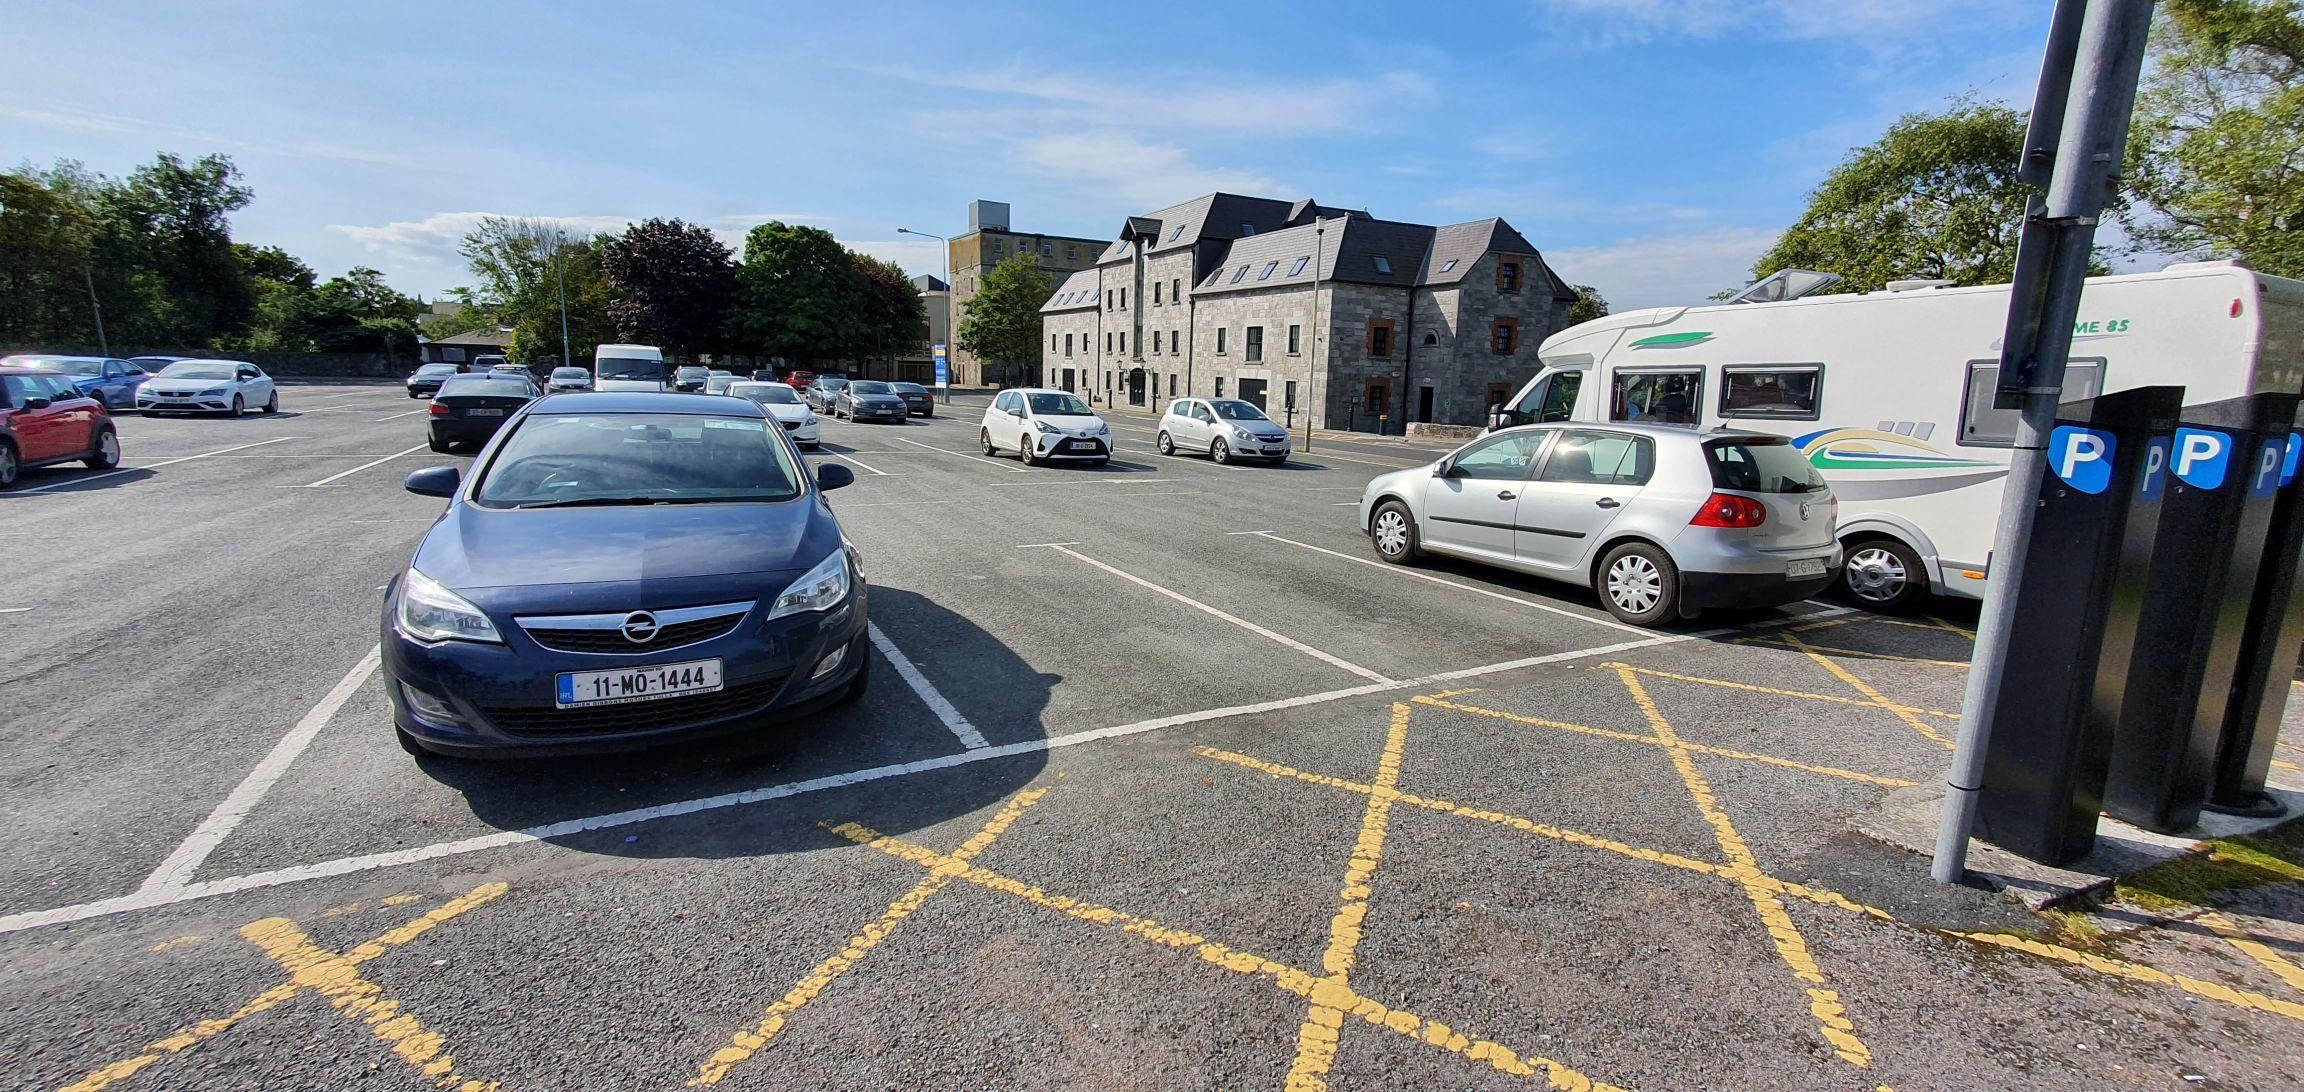 Cathedral Car Park